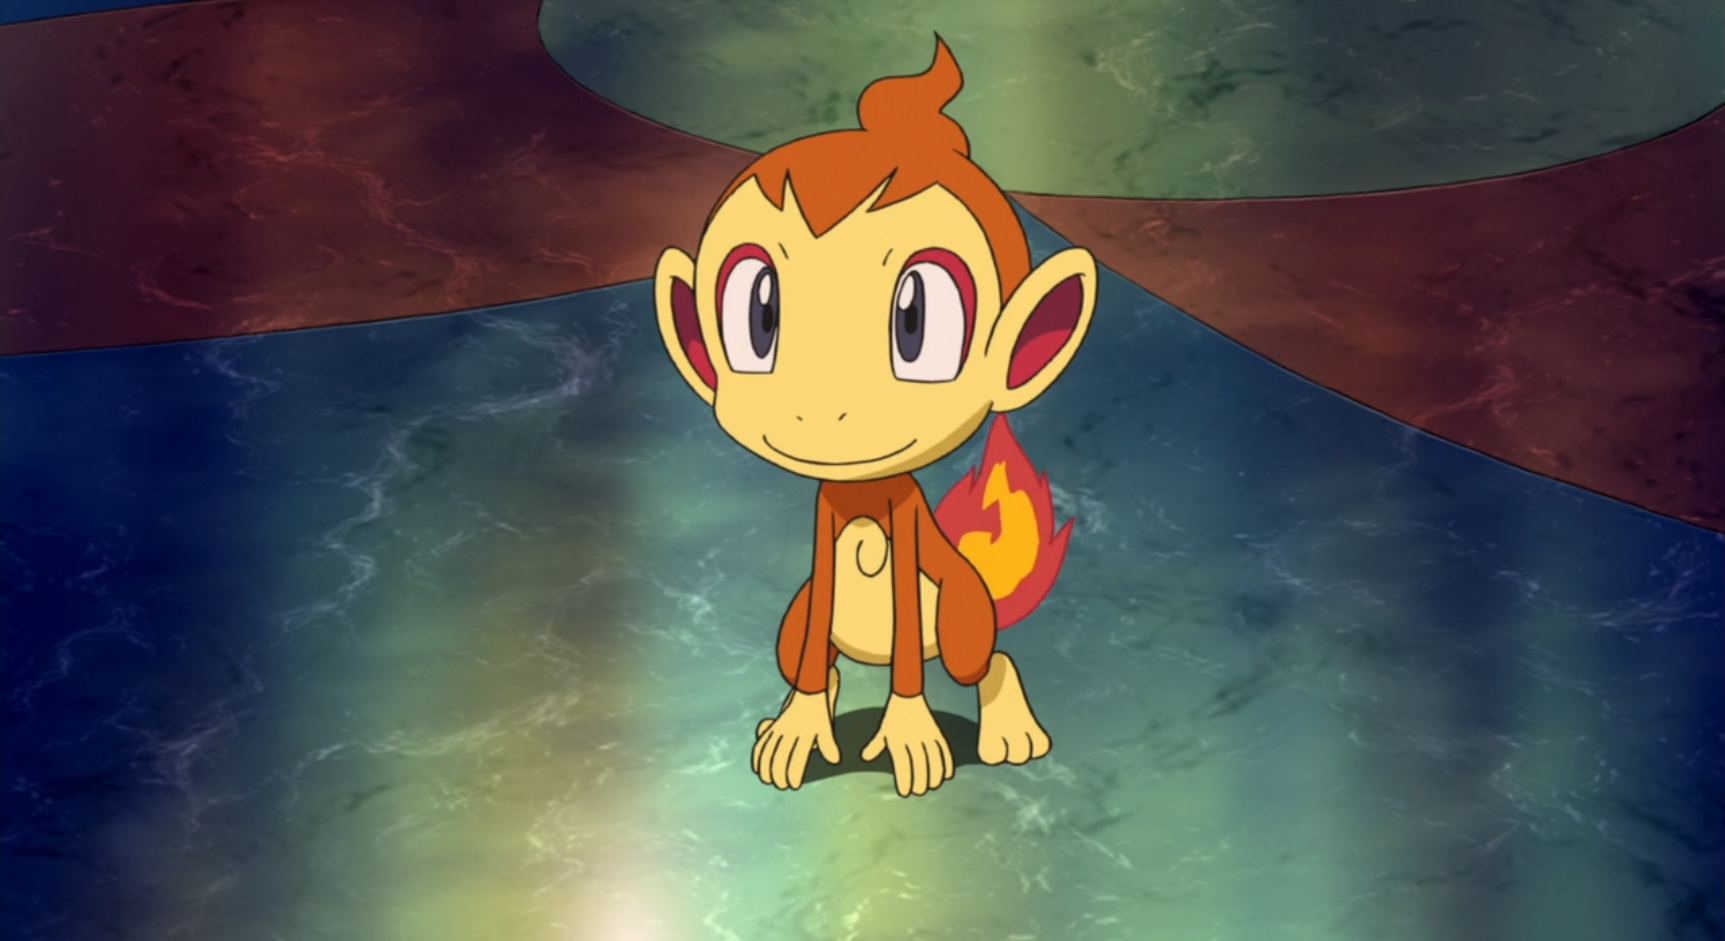 Alice's Chimchar helps her heat the air for her balloon with its flames. It doesn't seem to stay in a Poké Ball. It befriended Ash's Pikachu and Dawn's Piplup when they were in Alamos Town.